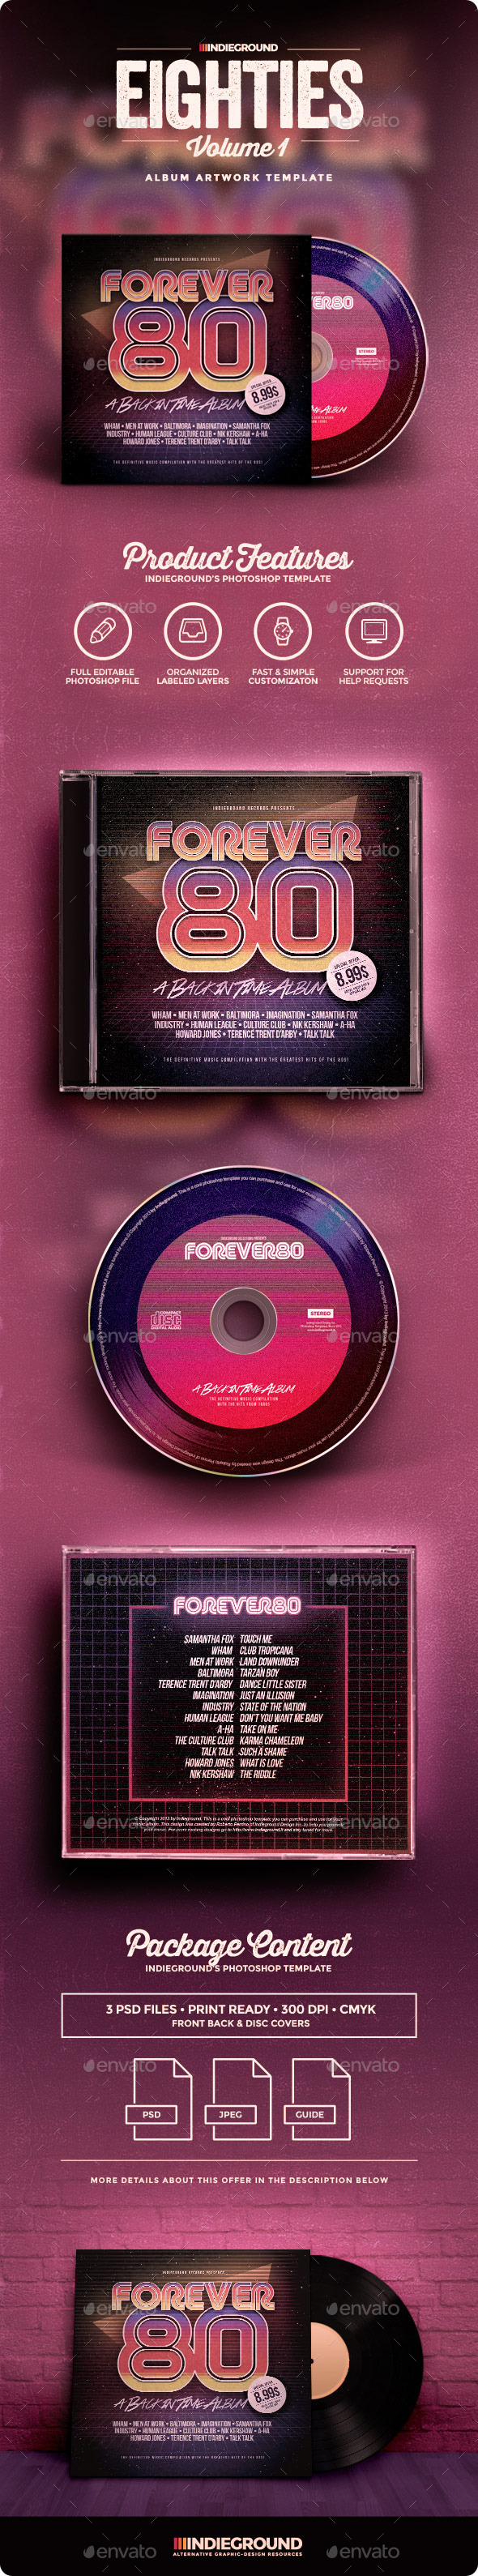 80s CD Album Artwork - CD & DVD Artwork Print Templates